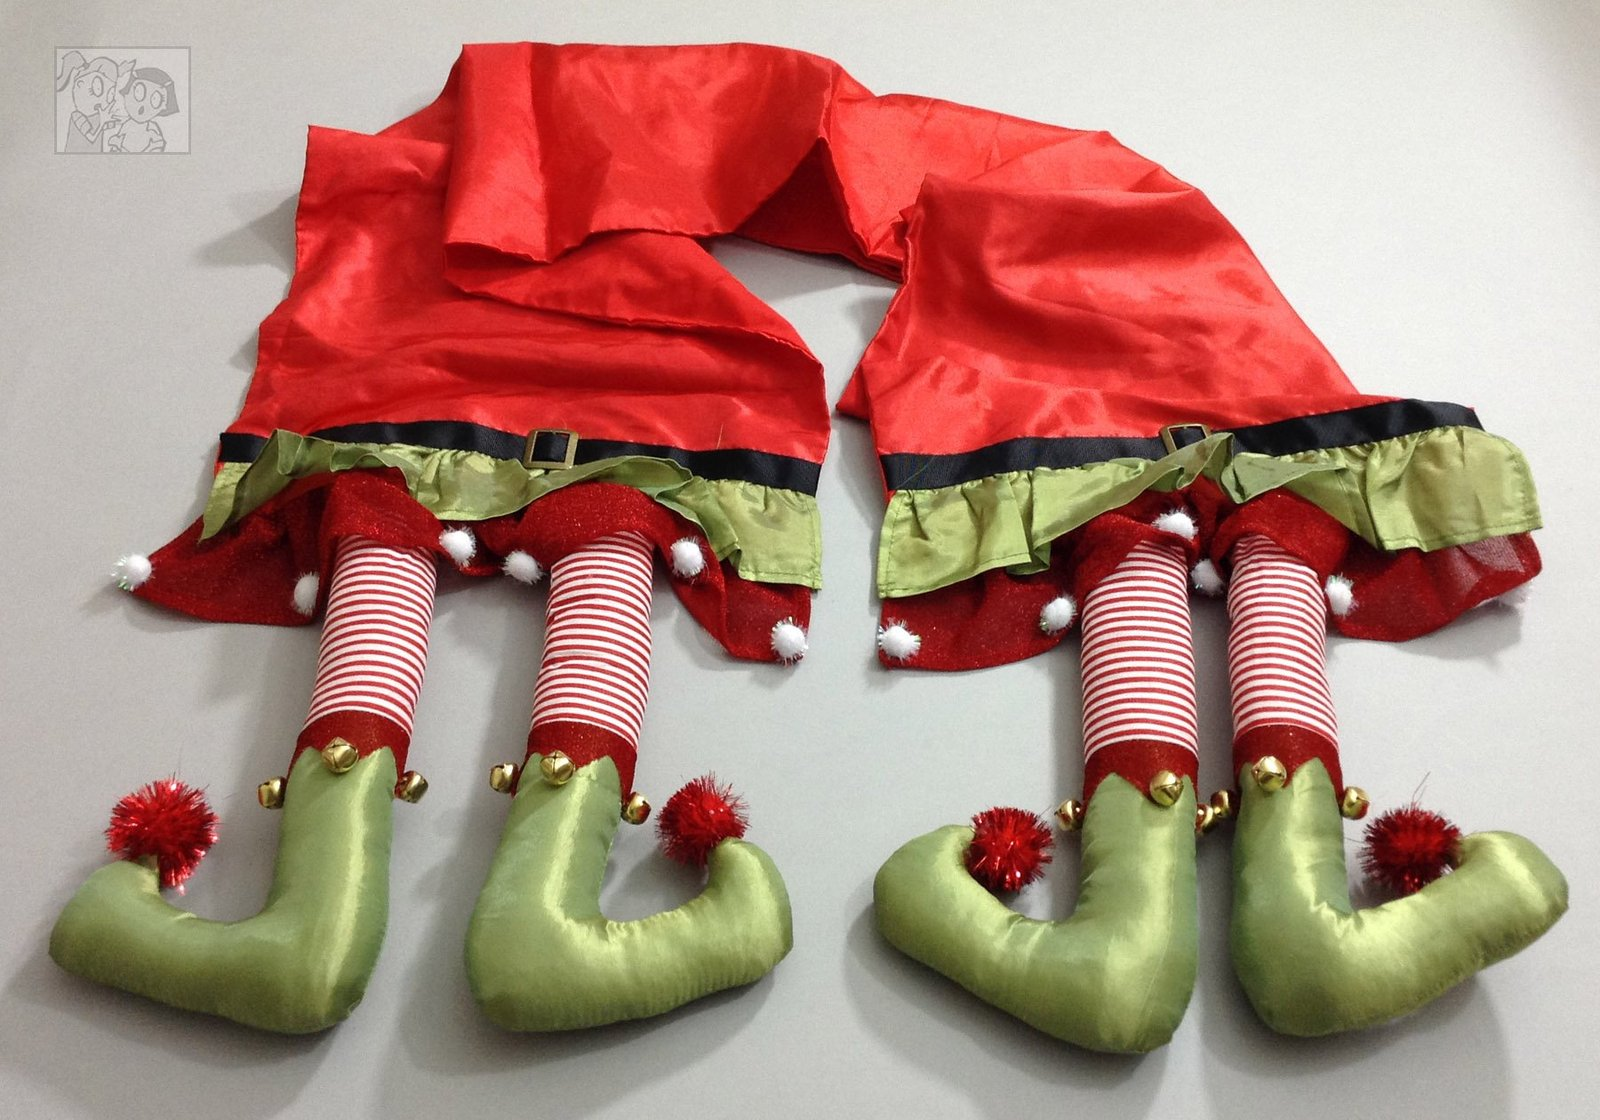 Christmas Elf Legs Table Runner 14x80 inches